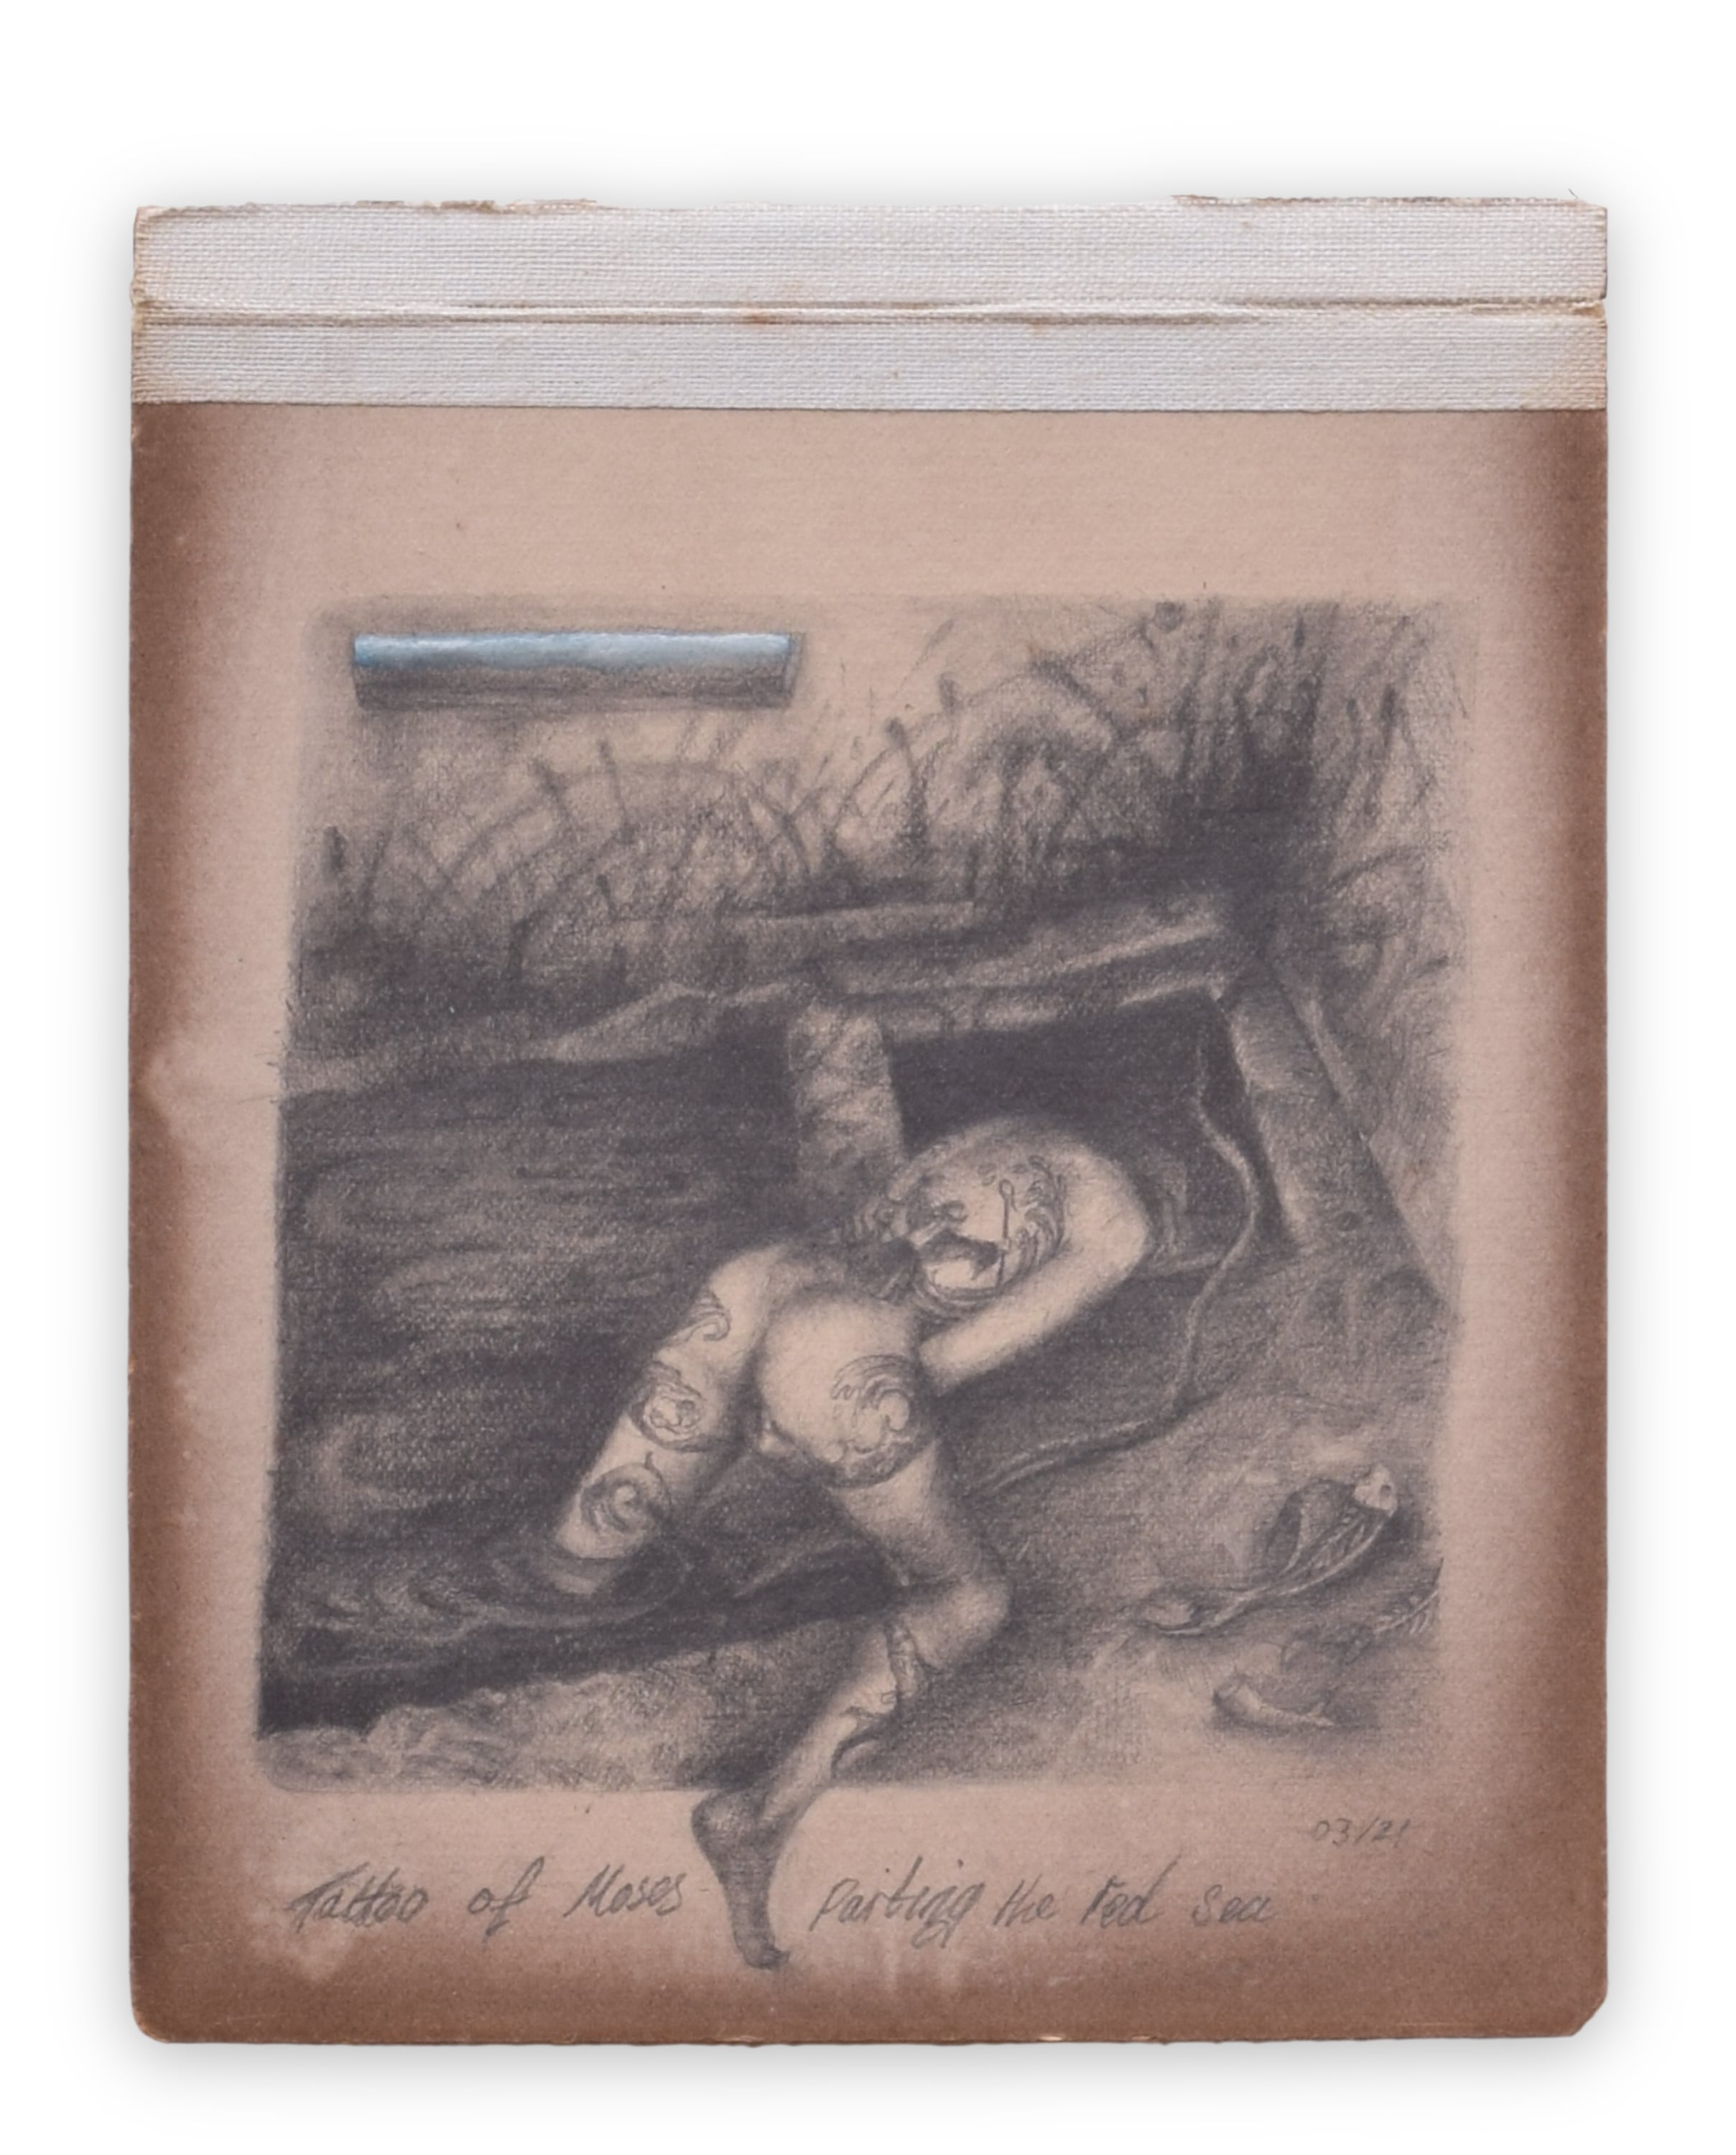 A woman lays down in a dirty abandoned bunker, there are two holes in the floor, she has a leg in one and hangs her head in the other. Her back displays a tattoo of Moses holding up an stick, with which he parts water.